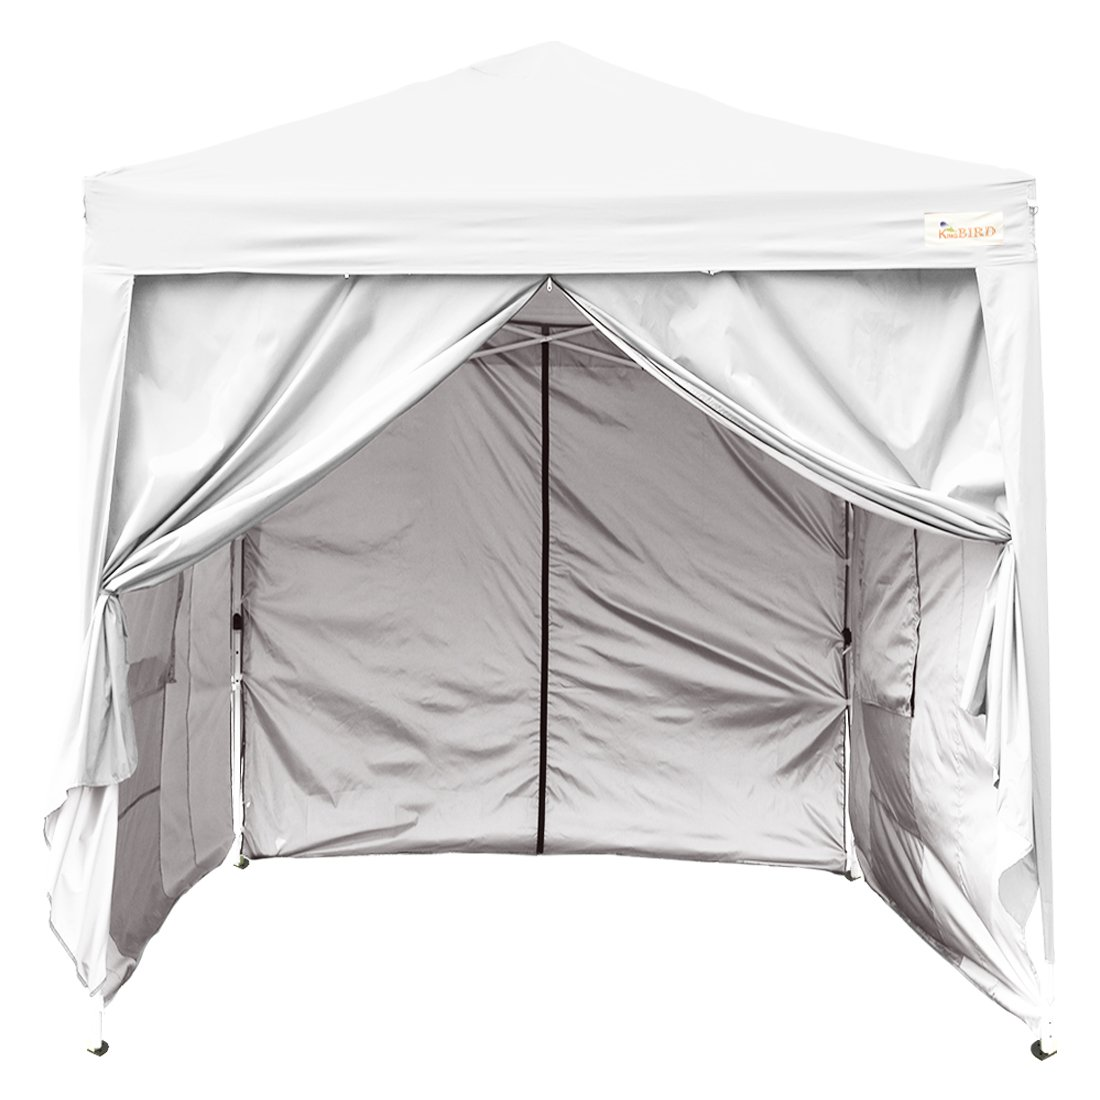 Kingbird 8 x 8 ft Easy Pop up Canopy Waterproof Party Tent 4 Removable Walls Mesh Windows with Carry Bag-6 Colors (White)